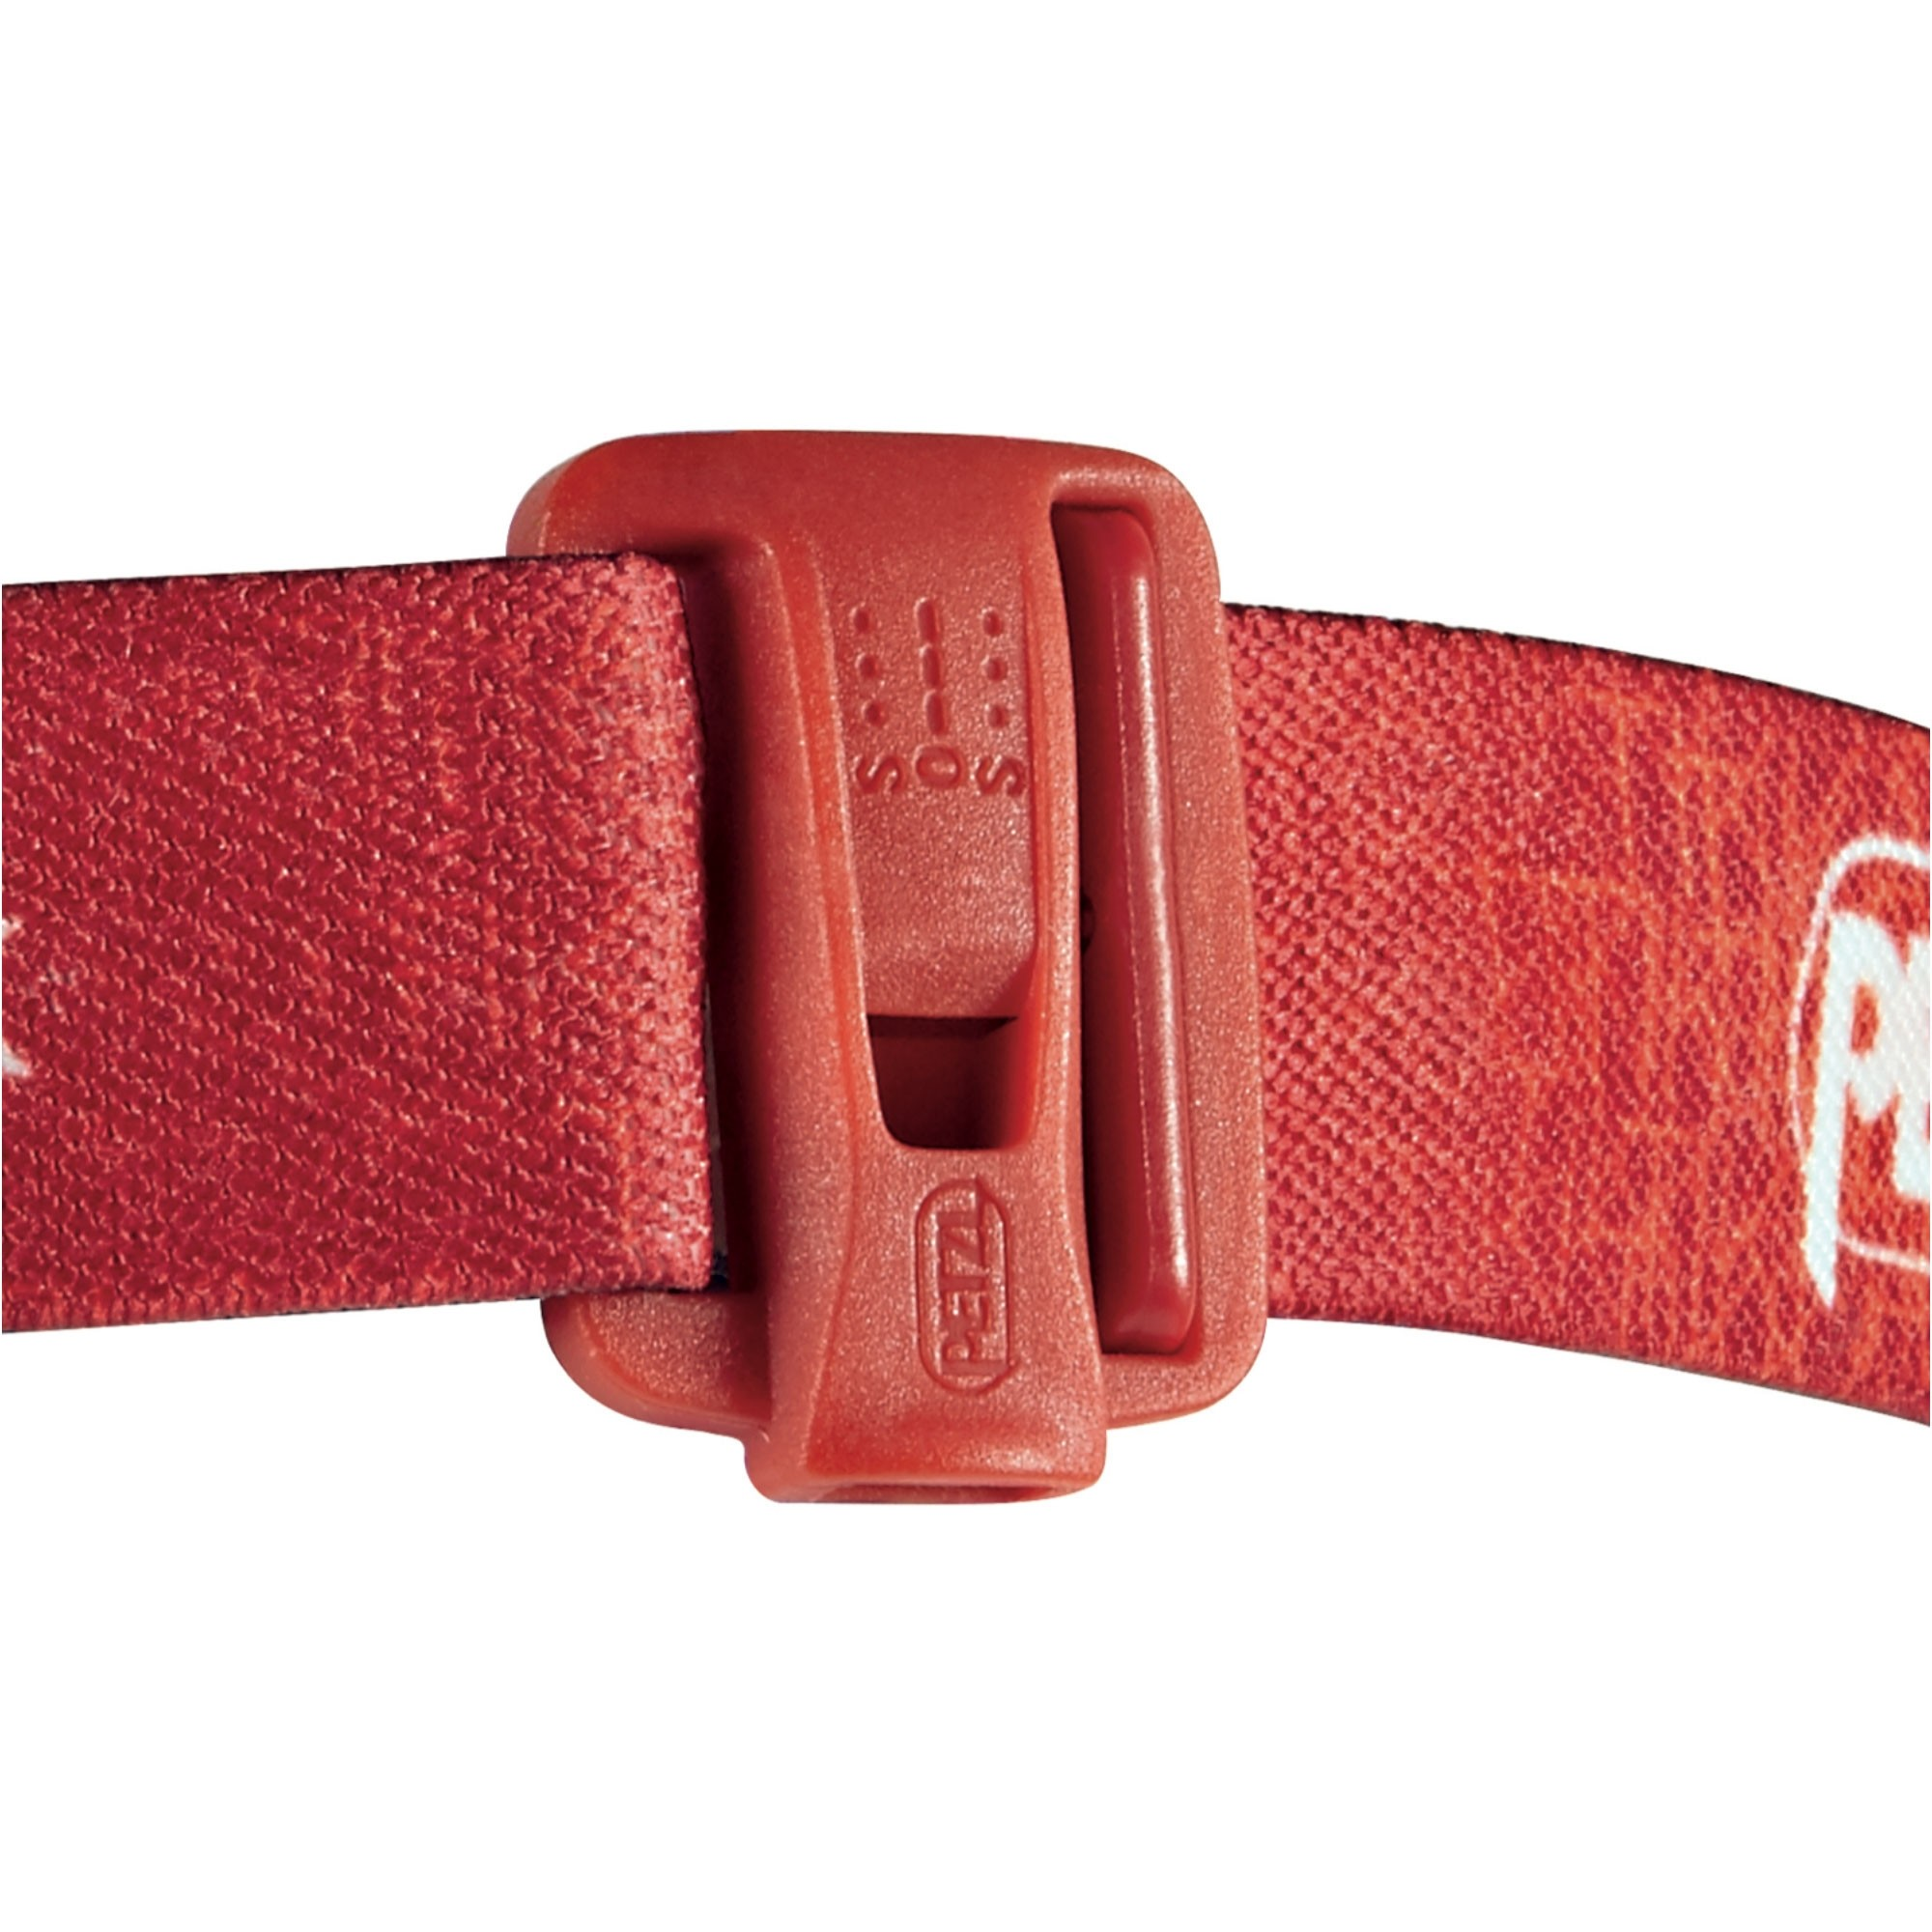 PETZL - Actik Core Rechargeable Headtorch - Red